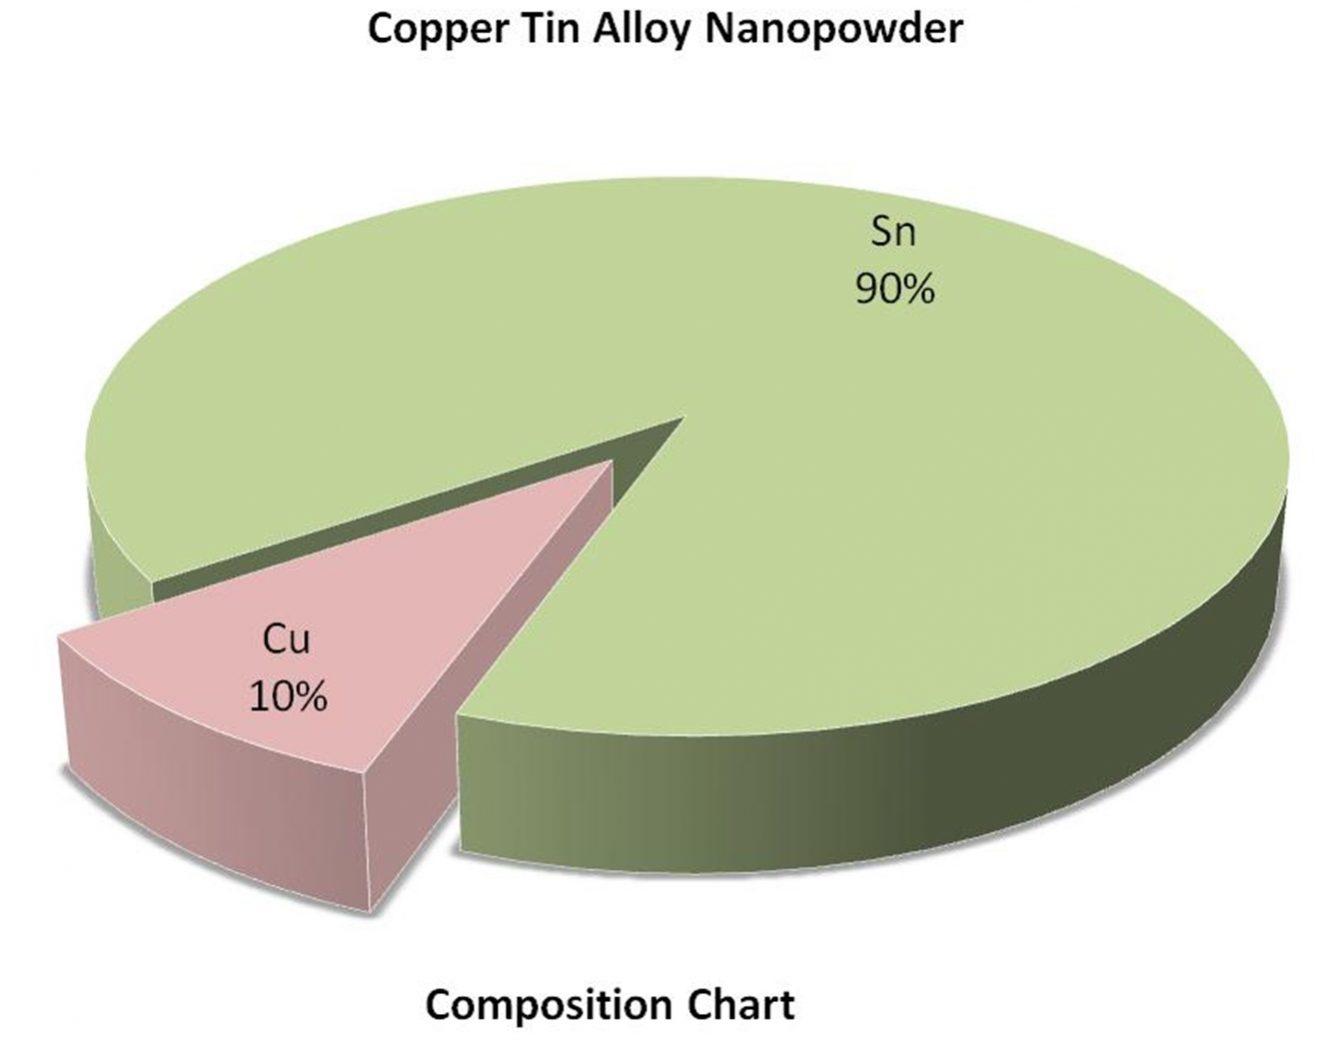 Composition Chart - Sn:Cu Alloy Nanopowder